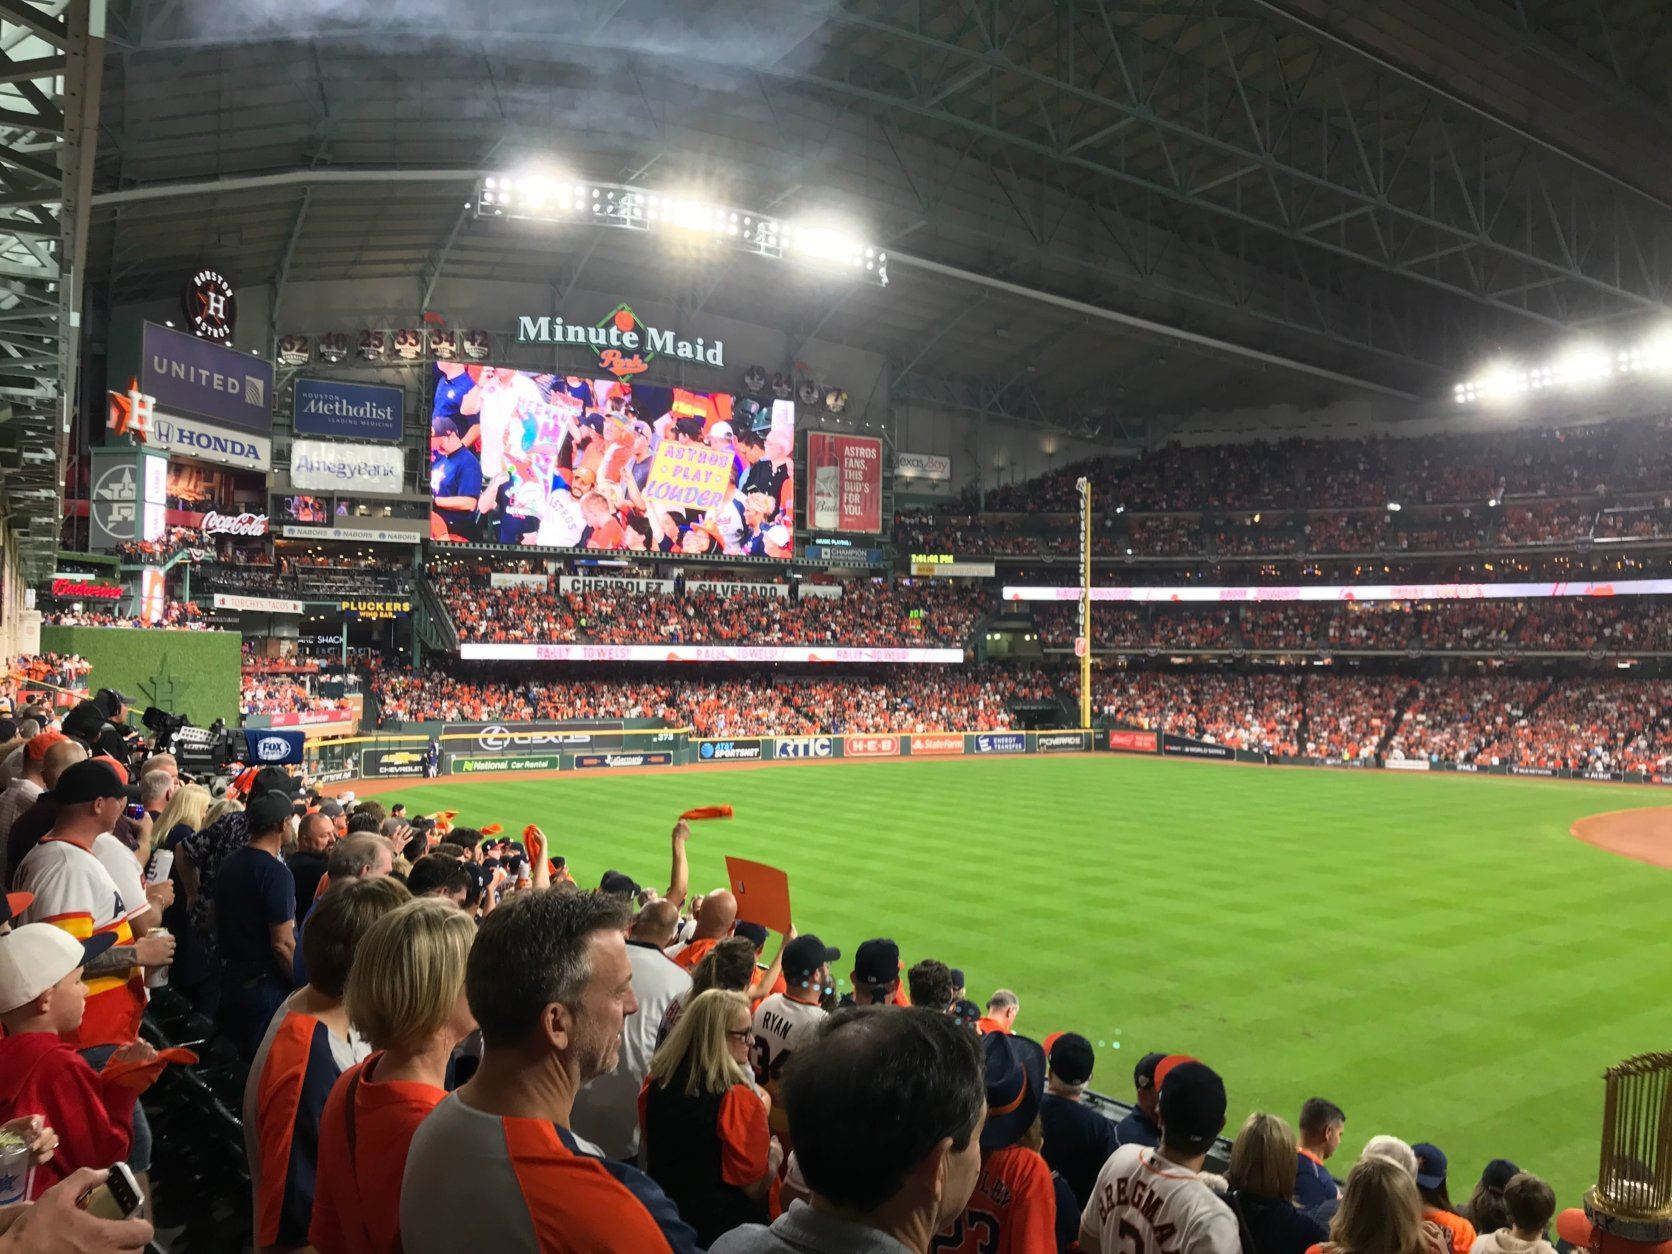 Fans watching Game 2 of the World Series in Houston